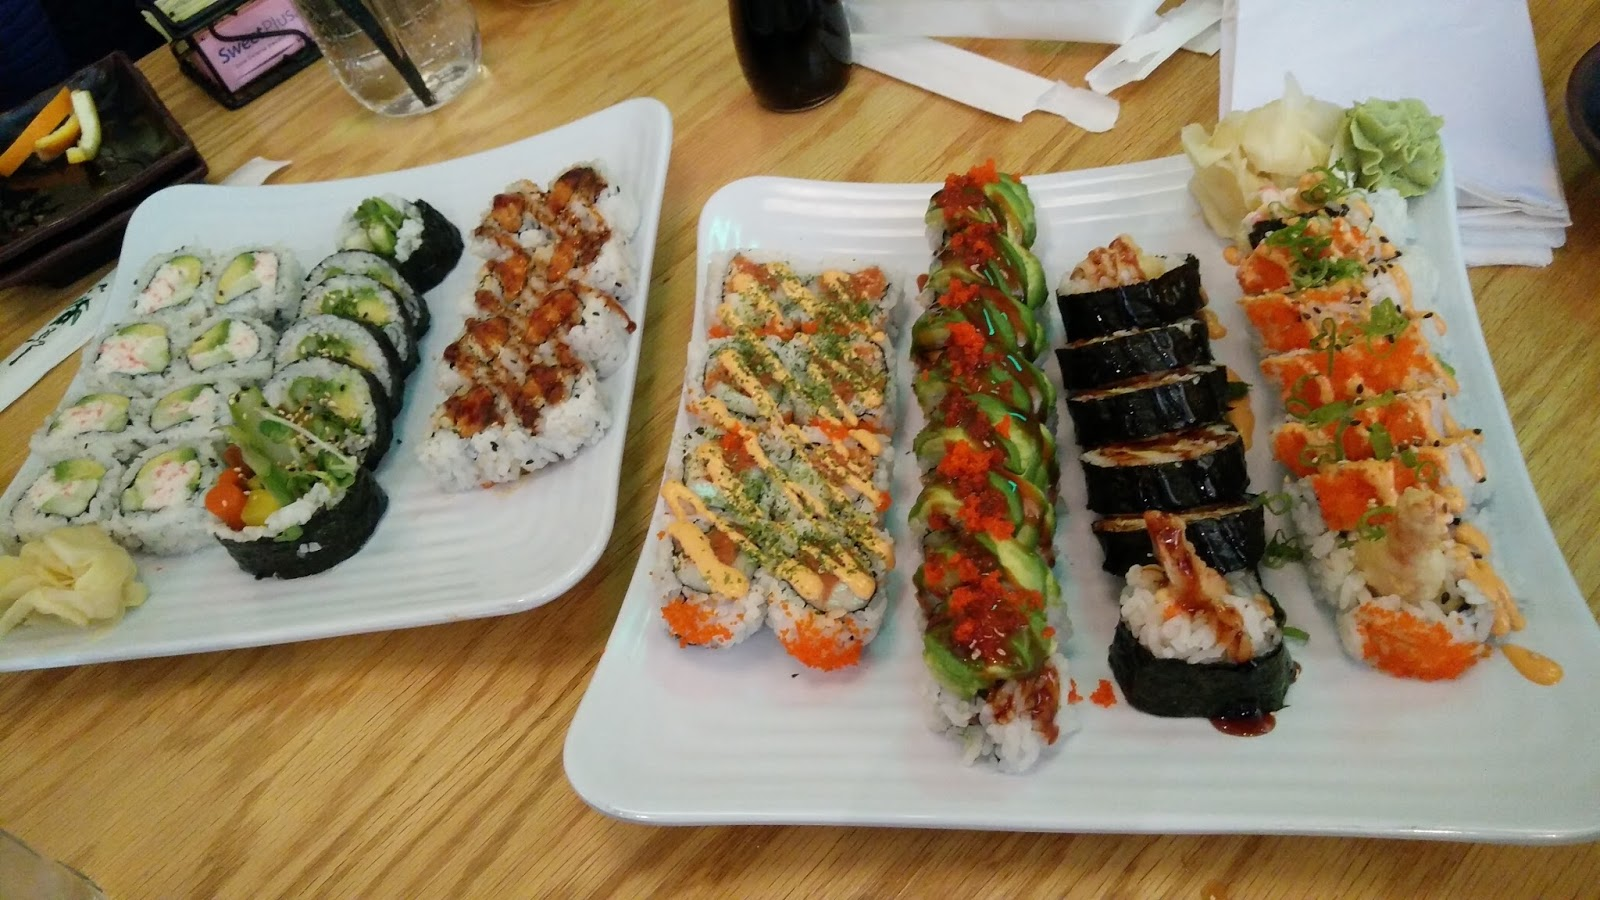 Sushi Station Webster Groves Visited March 2018 Find us on the corner of the louisiana street and 23rd street. sushi station webster groves visited